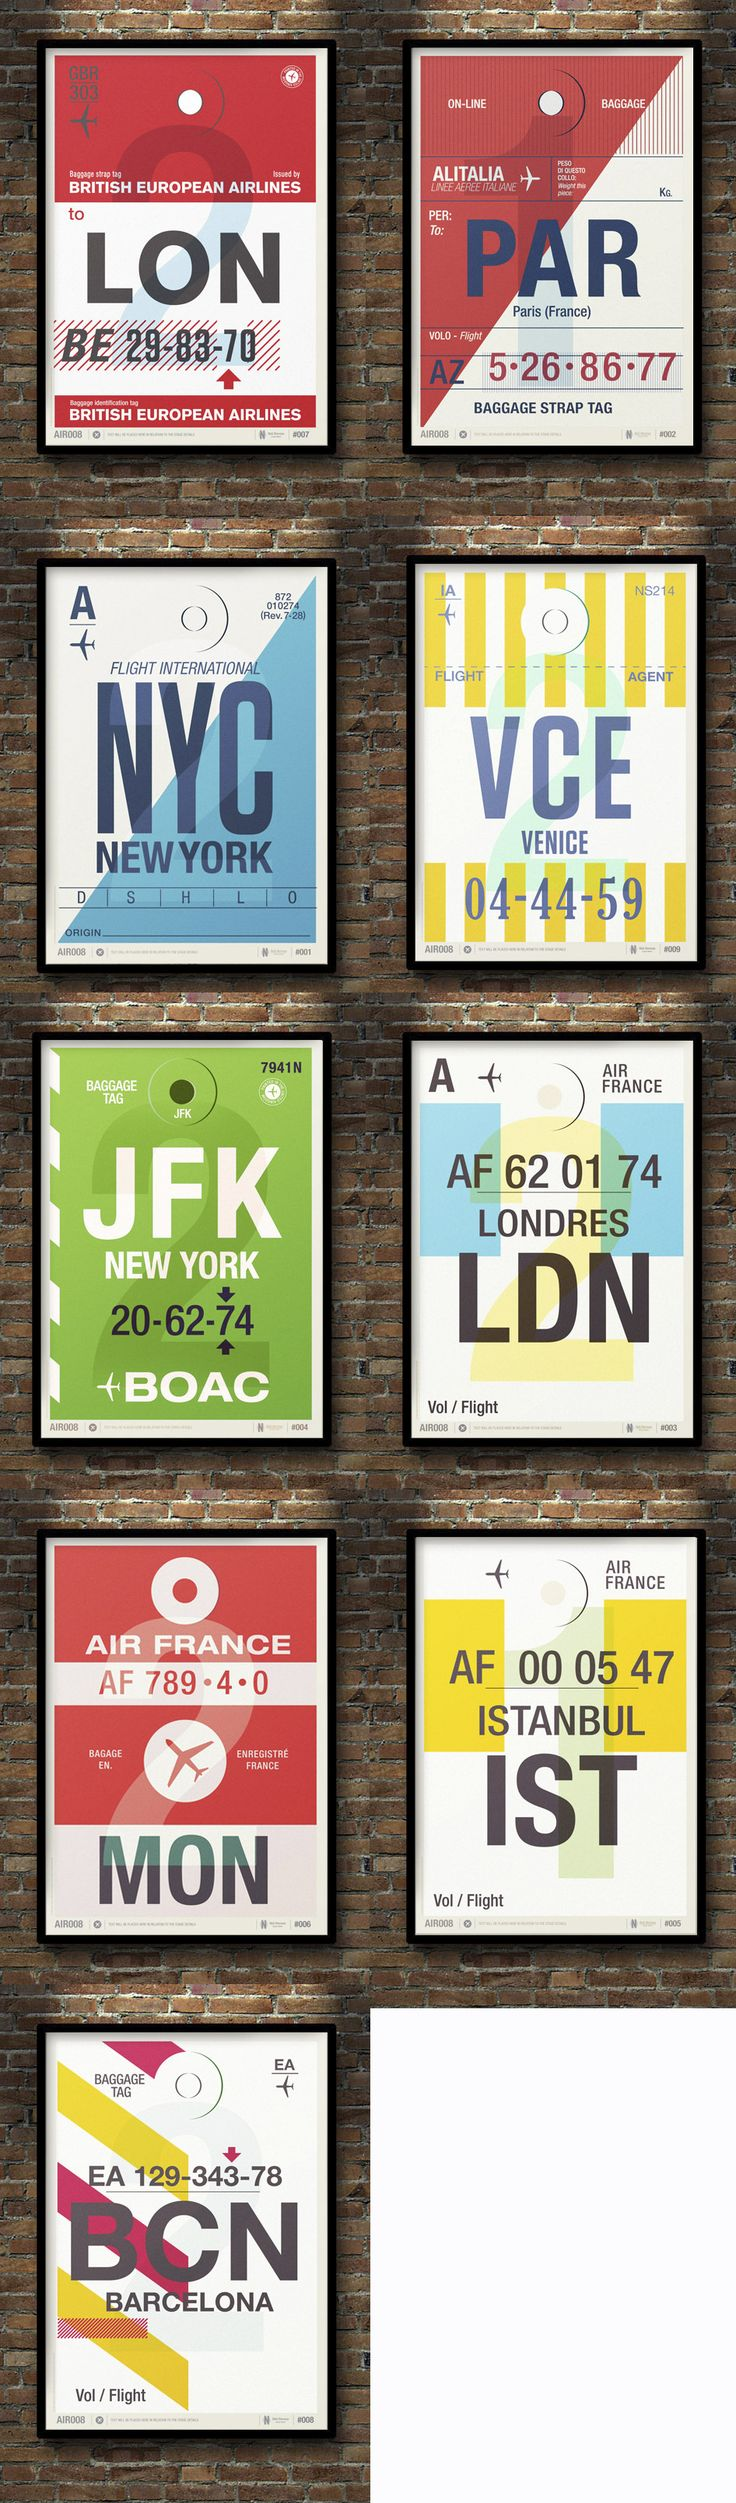 エルライノポスタ Airline Posters from different countries